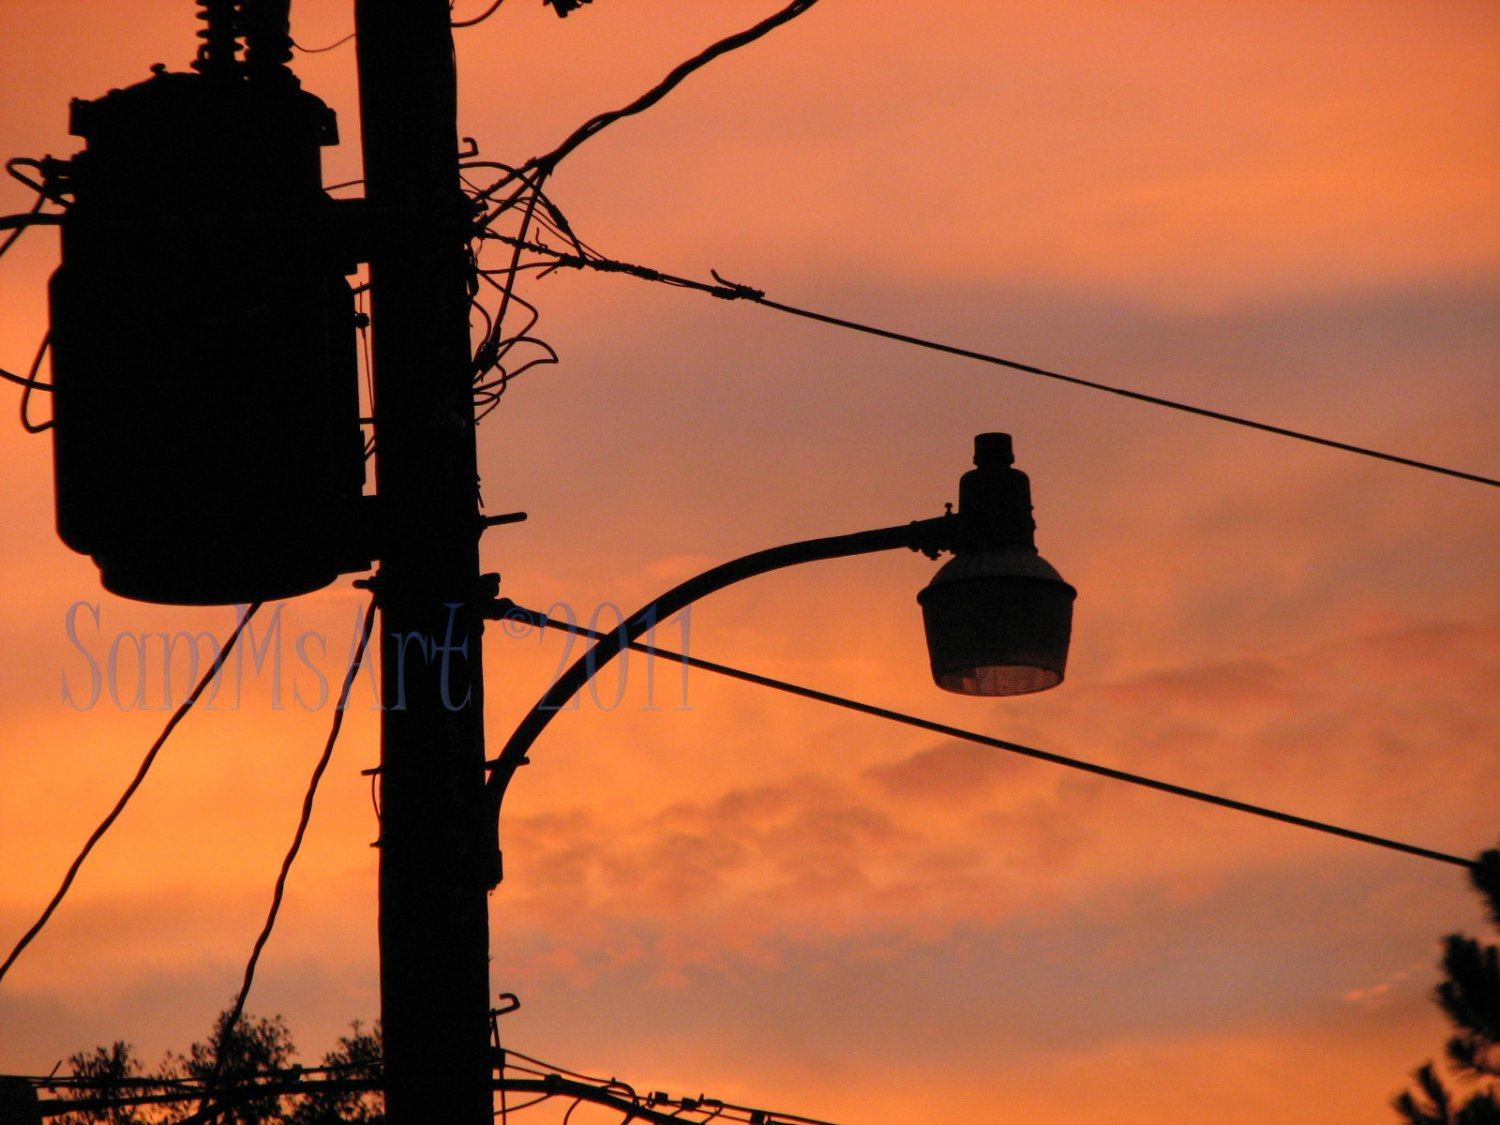 August 28 - 8x10 Print, Digital Fine Art Image Photo - Sunset, summer, fall, Power lines, Clouds